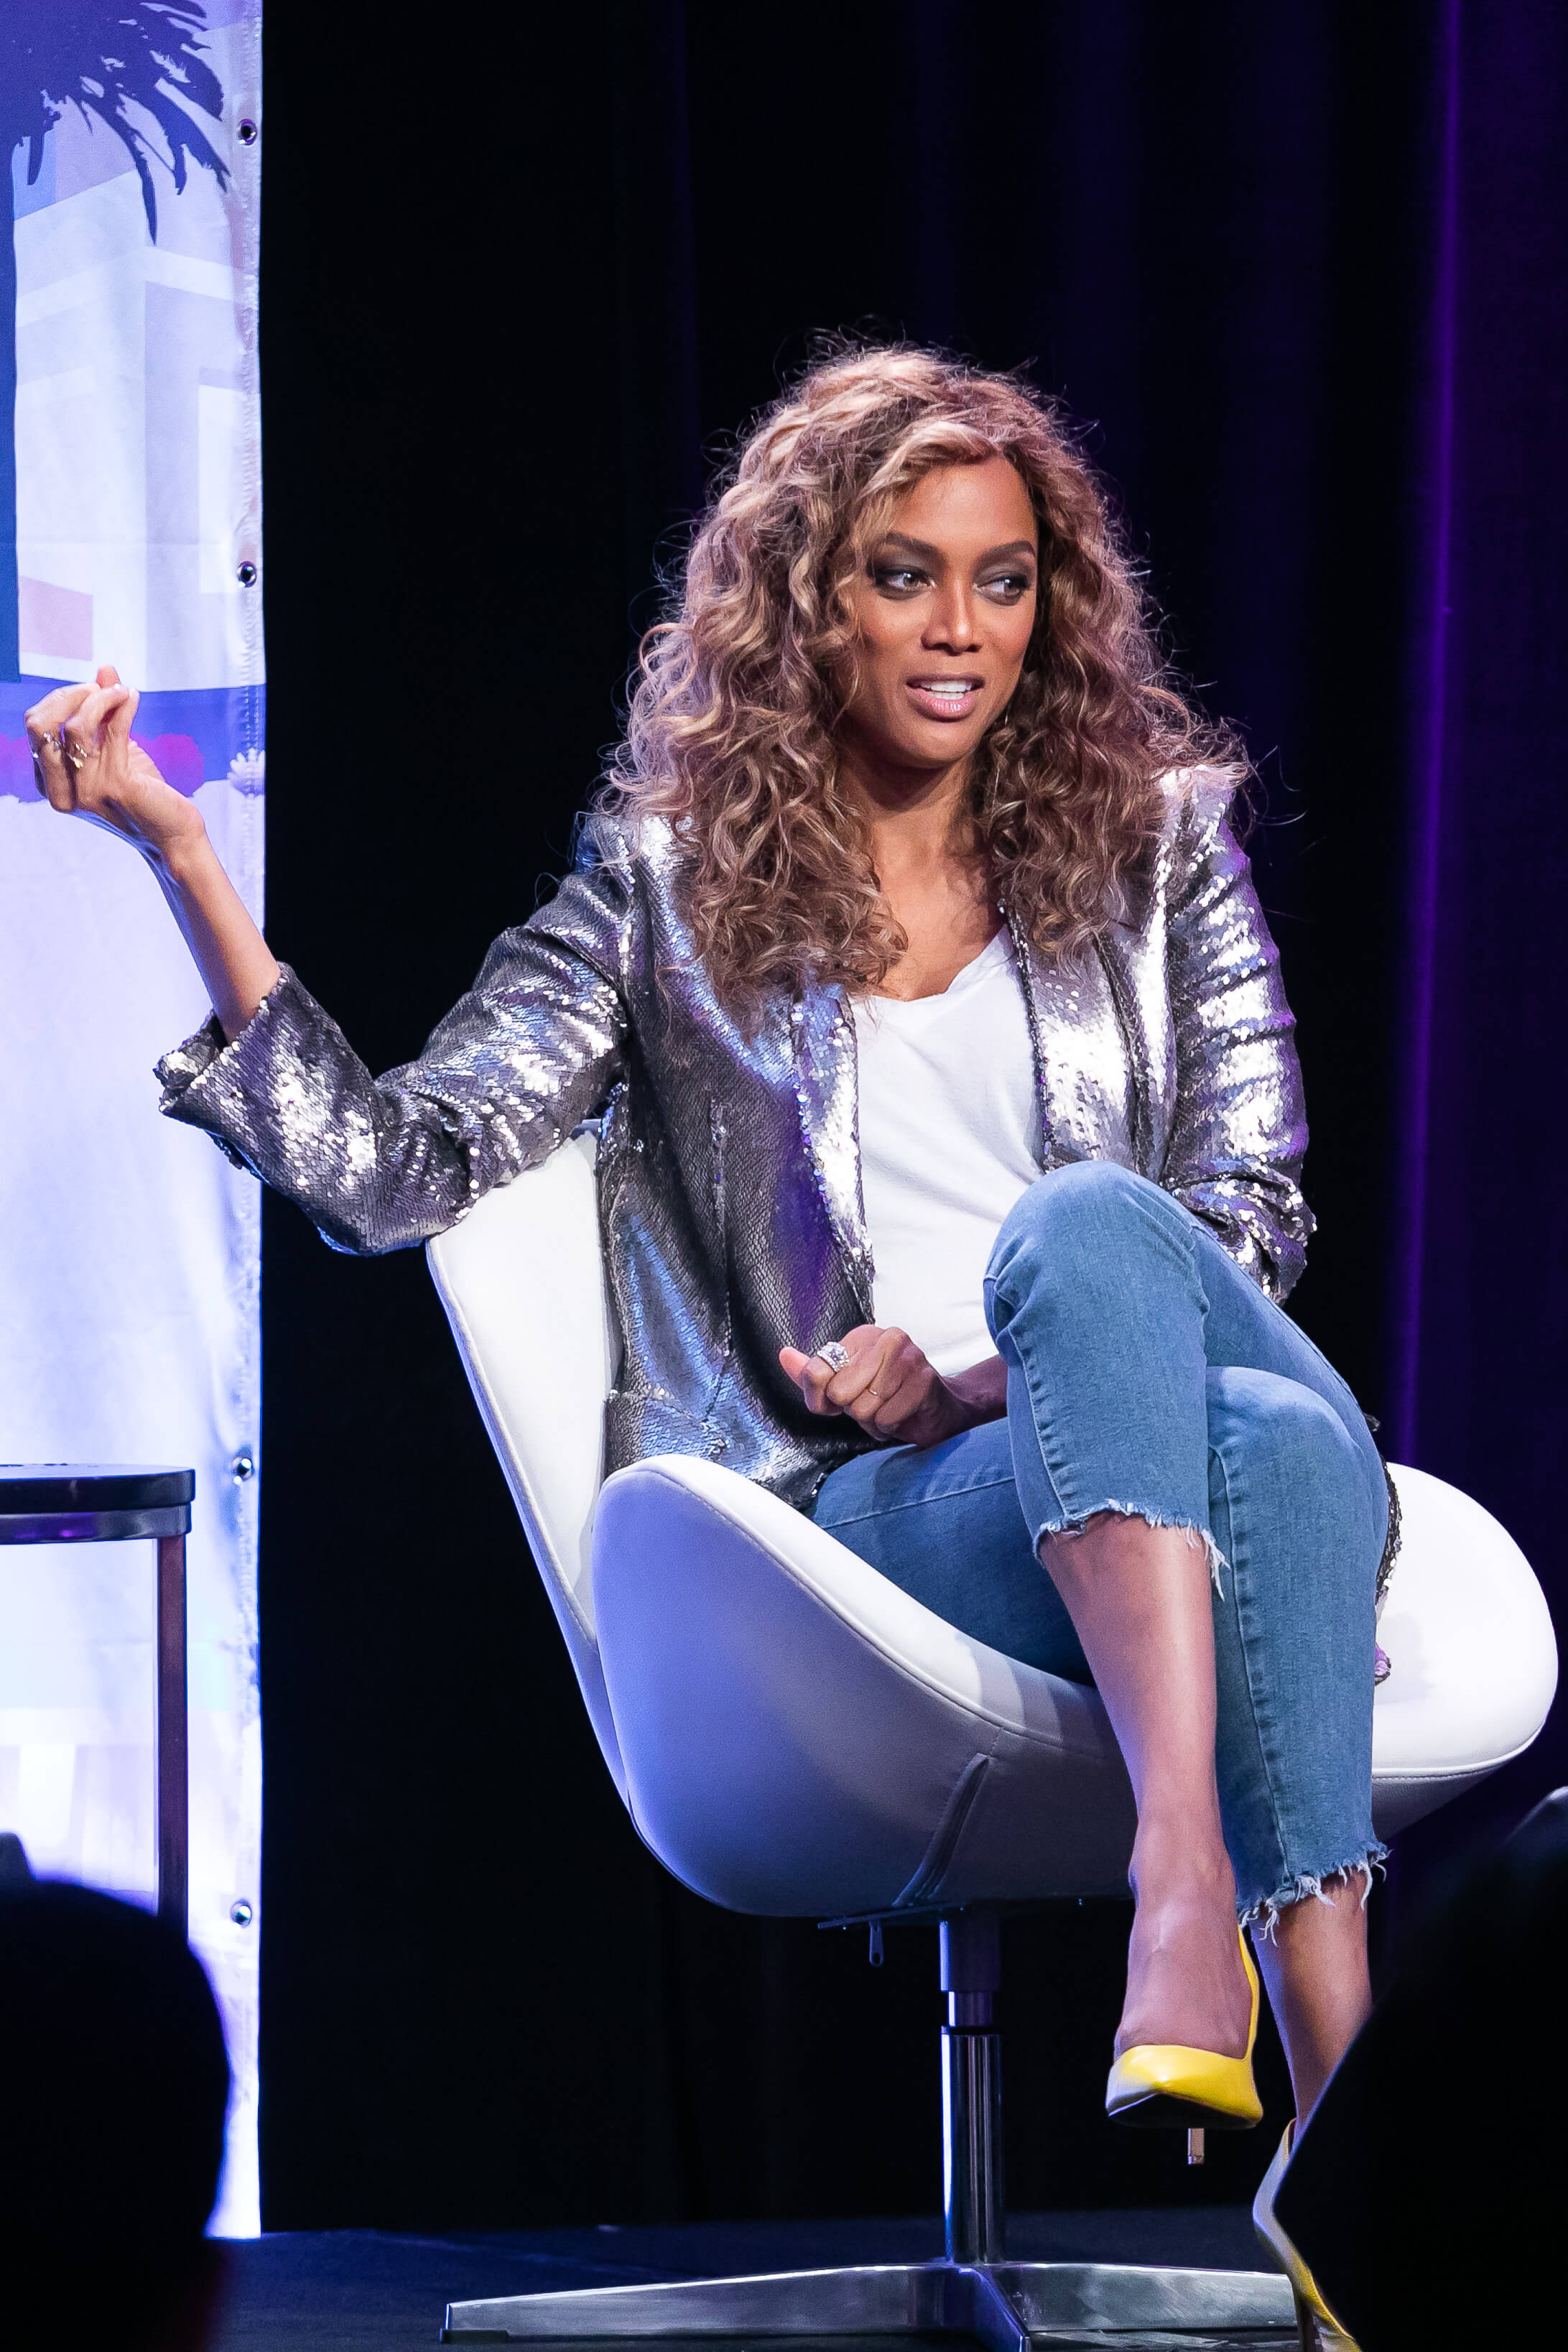 The Influencer Continuum kicked off with fireside chats starring model and media entrepreneur, Tyra Banks; groundbreaking writer/producer, Kenya Barris of Black-ish and Girls Trip; and up and coming artist, Bryce Vine.